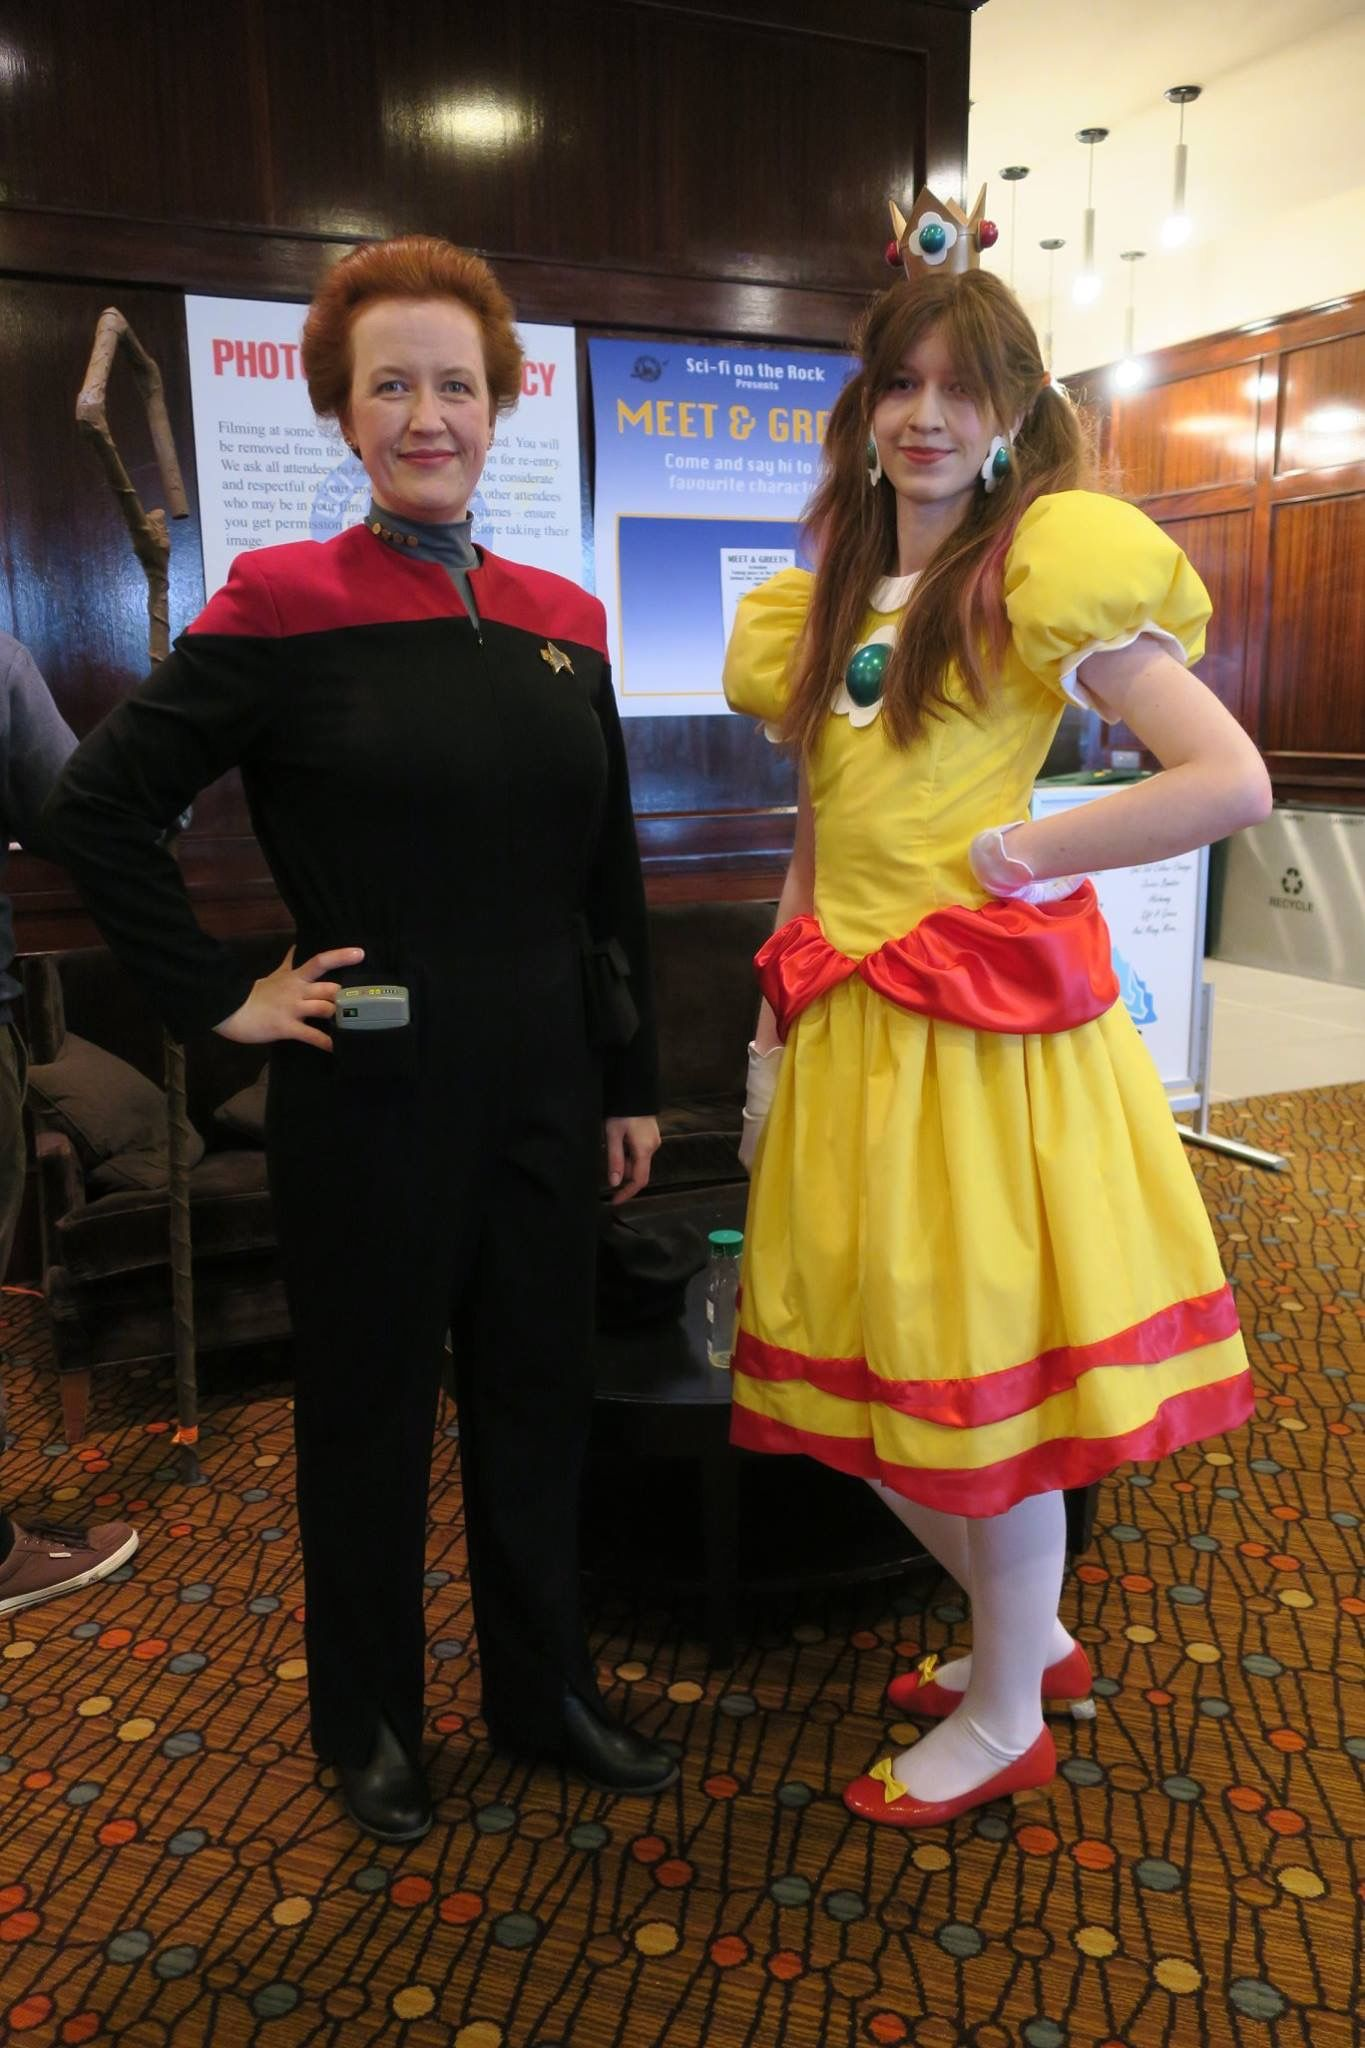 Captain Janeway (Star Trek: Voyager) and Princess Daisy (Super Mario). Cosplay 2017 for myself and my daughter.